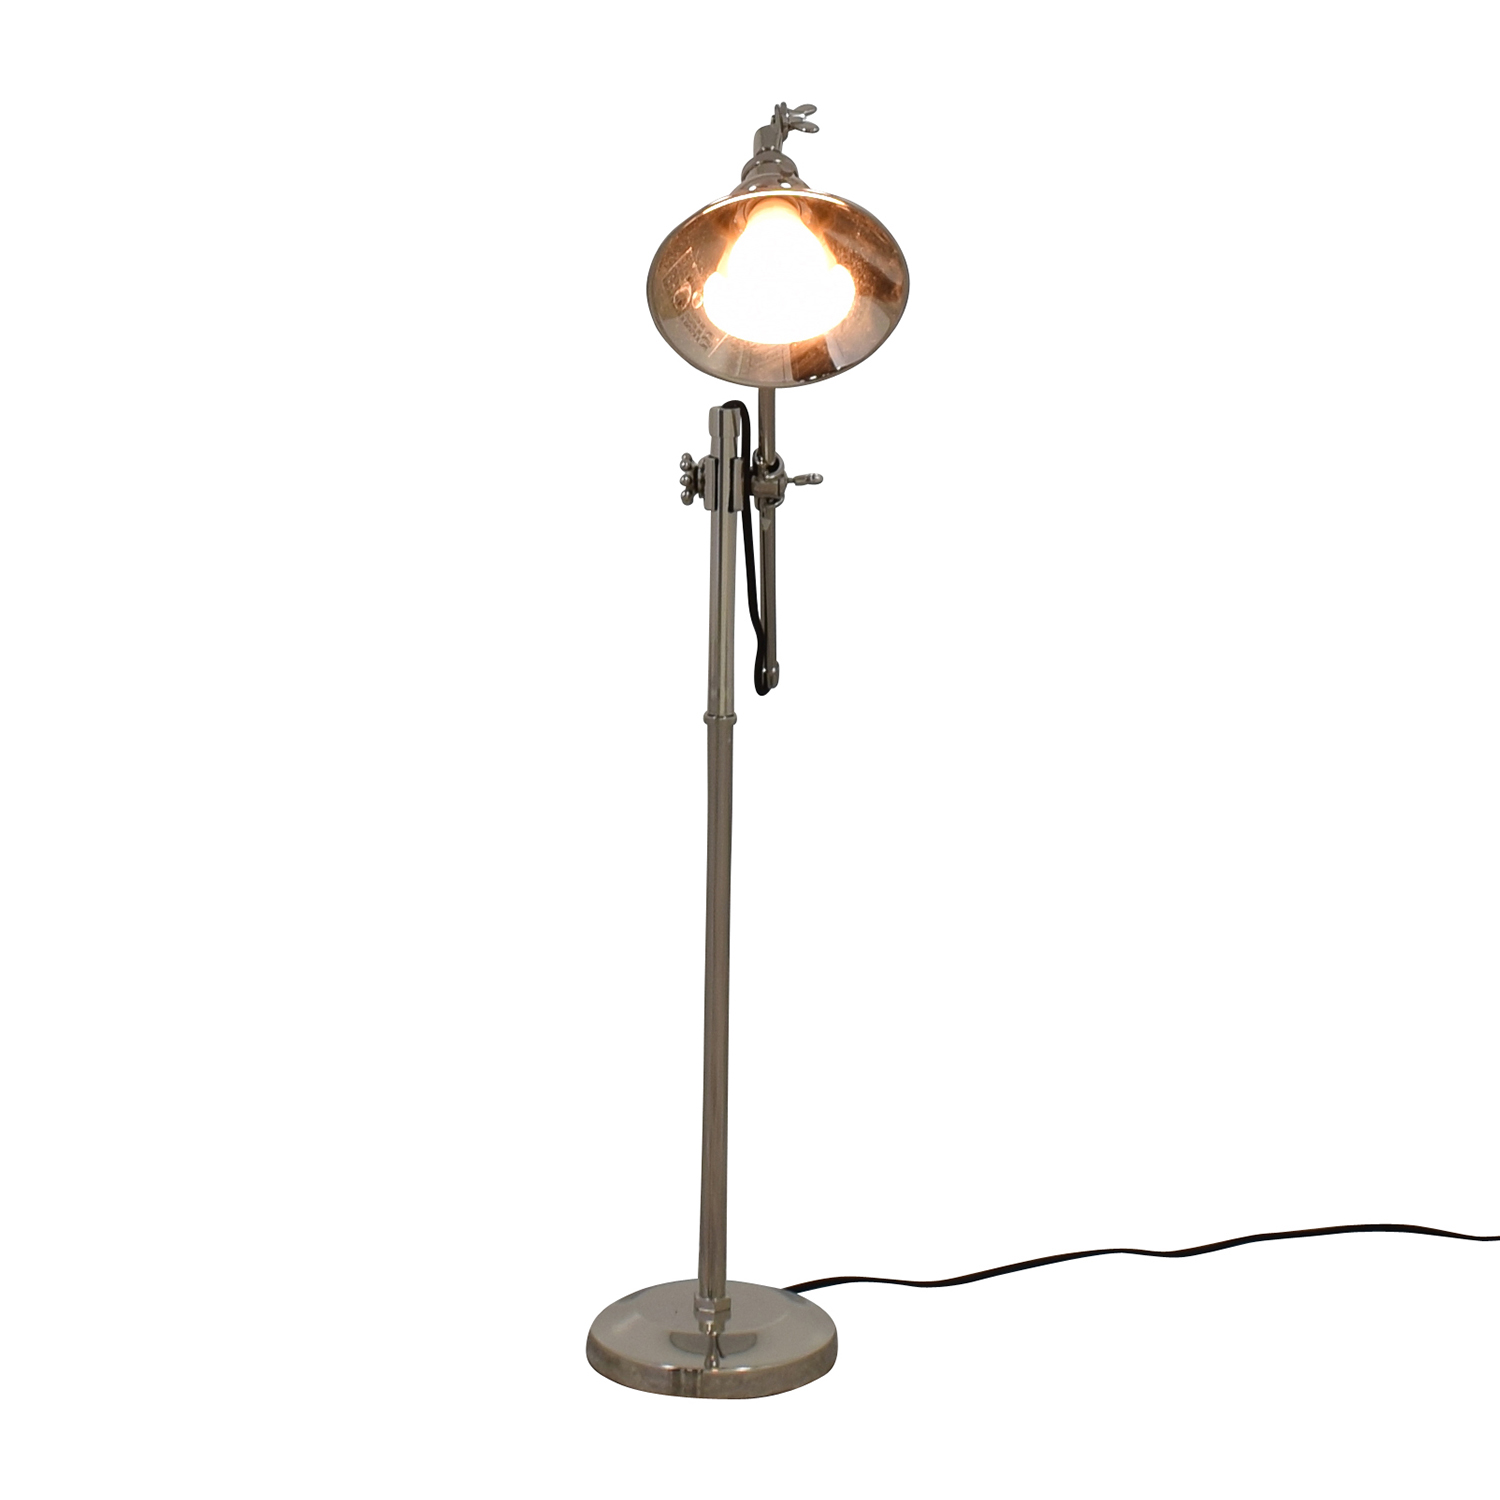 Restoration Hardware Restoration Hardware Chrome Desk lamp on sale